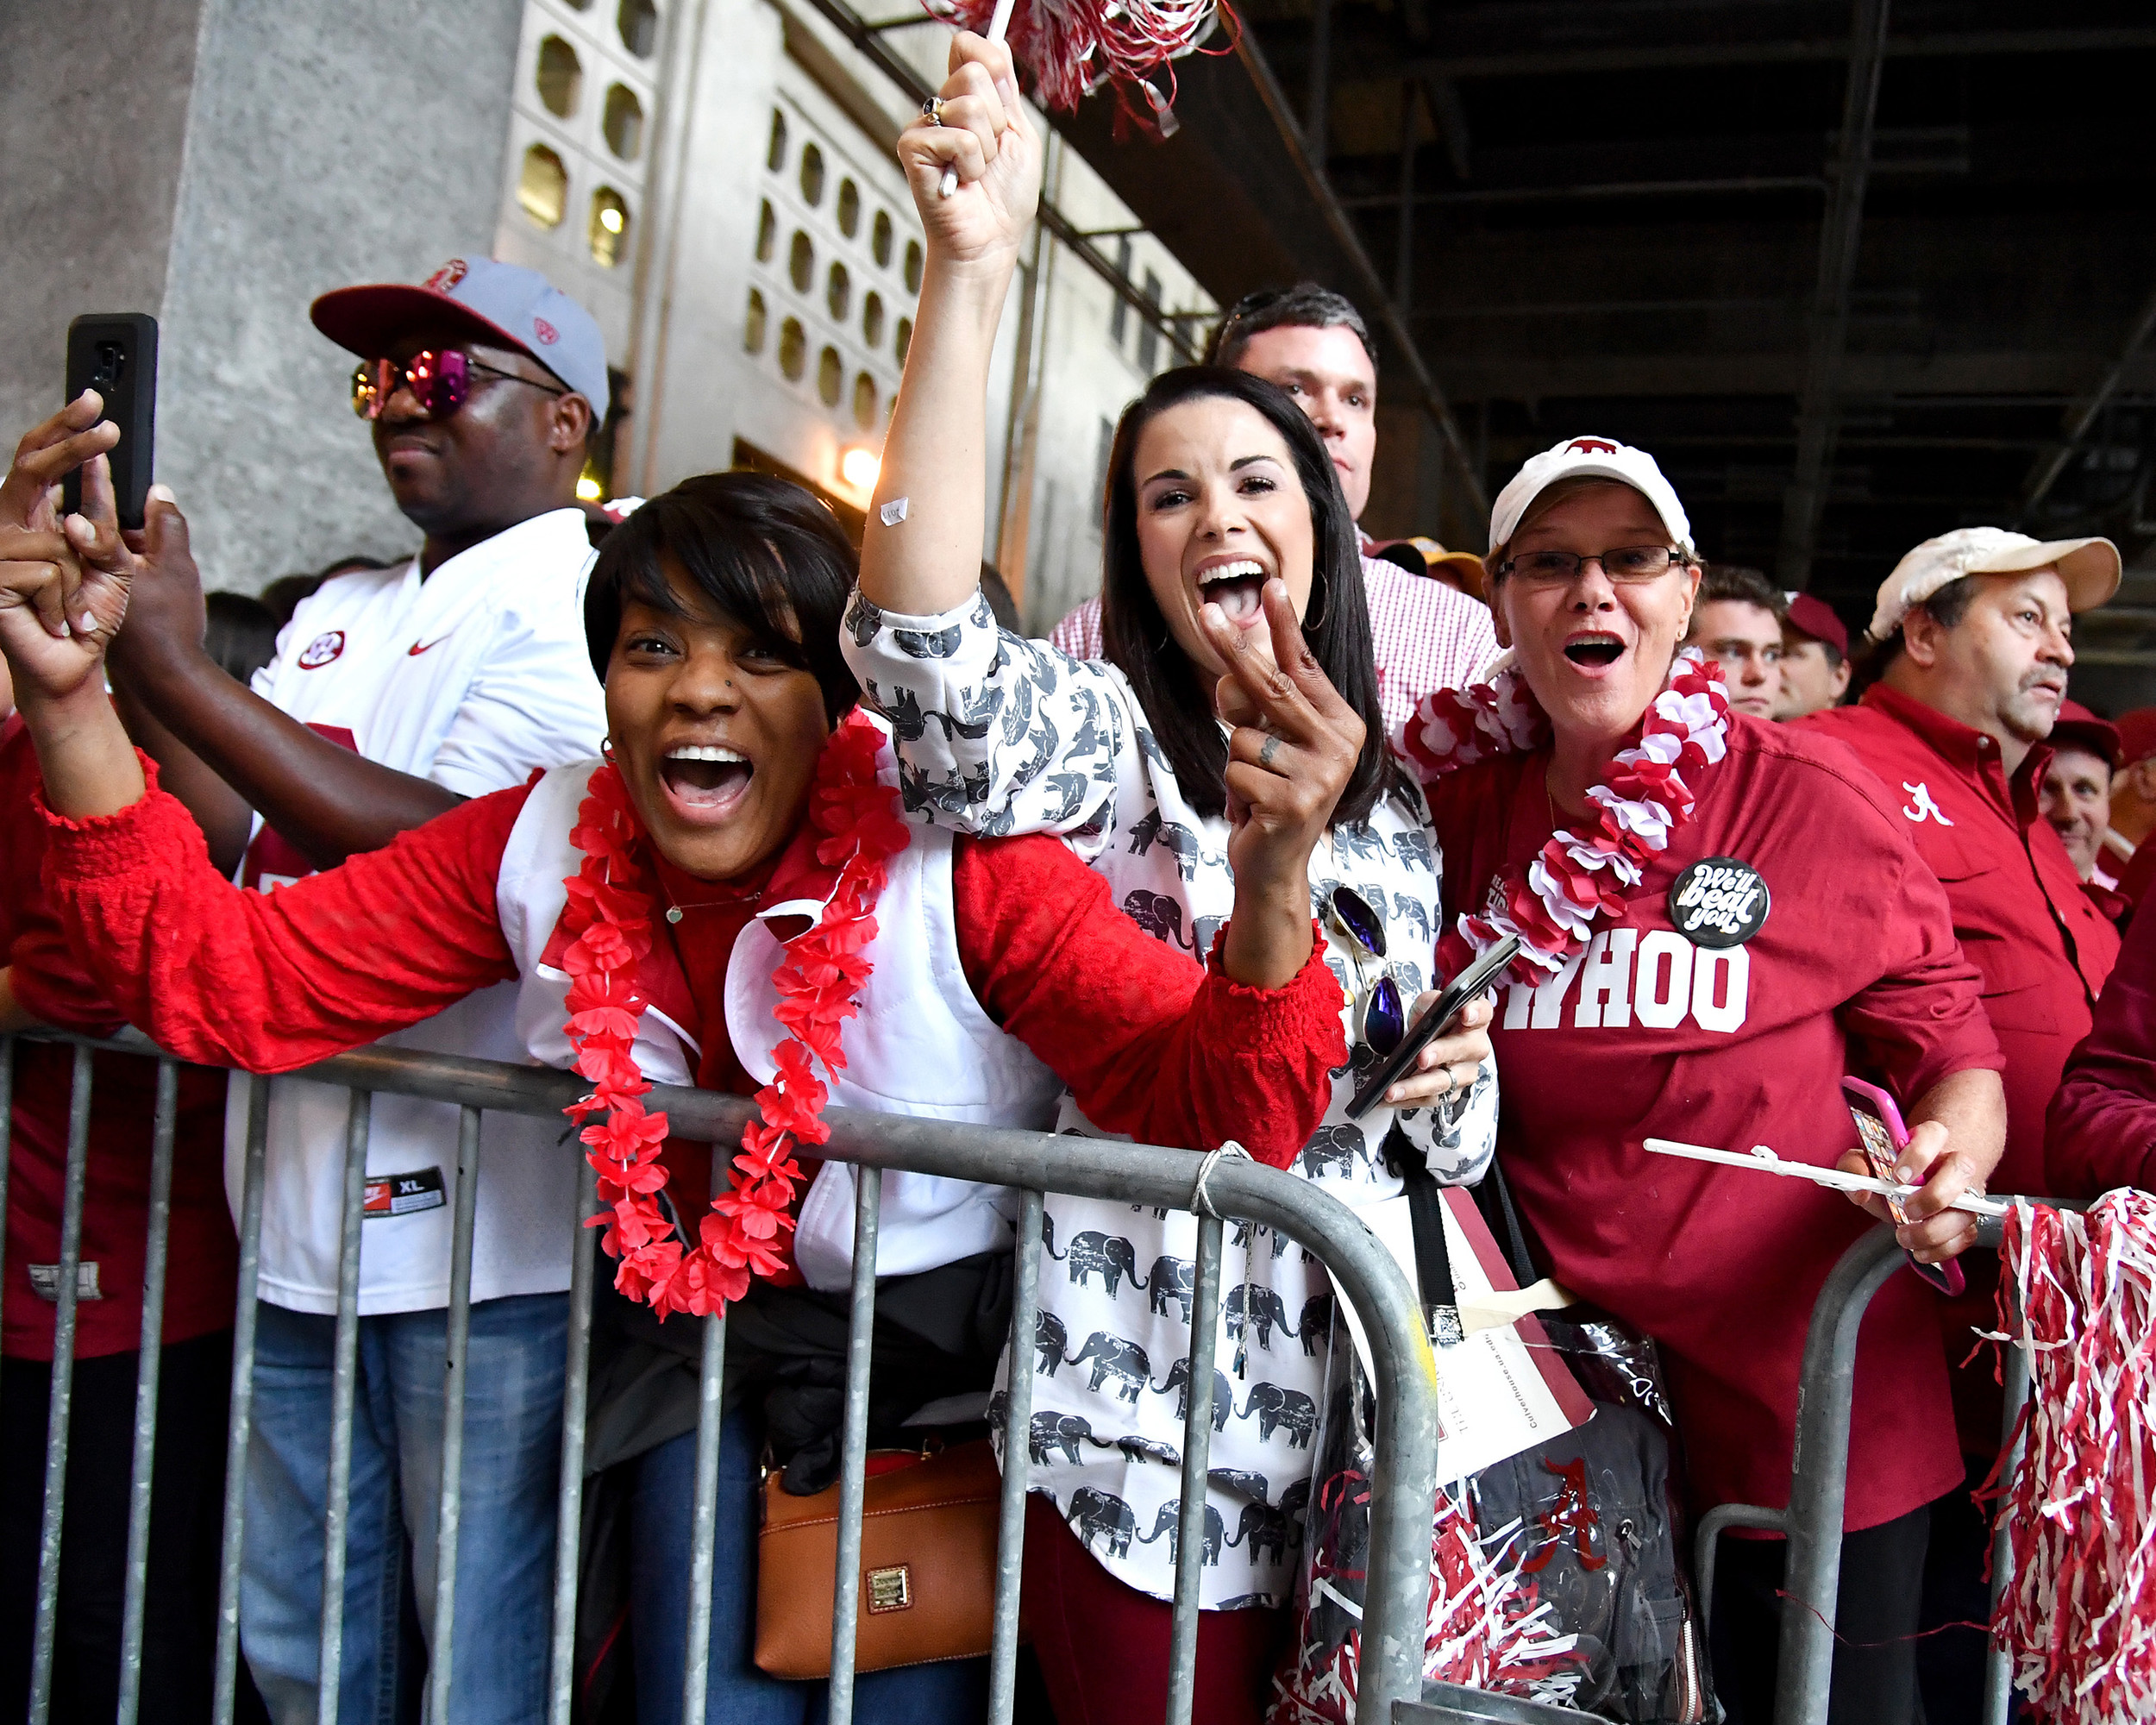 Fans react as the Alabama Crimson Tide football team walk into Tiger Stadium prior to an NCAA football game against the LSU Tigers Saturday, November 3, 2018, in Baton Rouge, La. (Photo by Lee Walls)